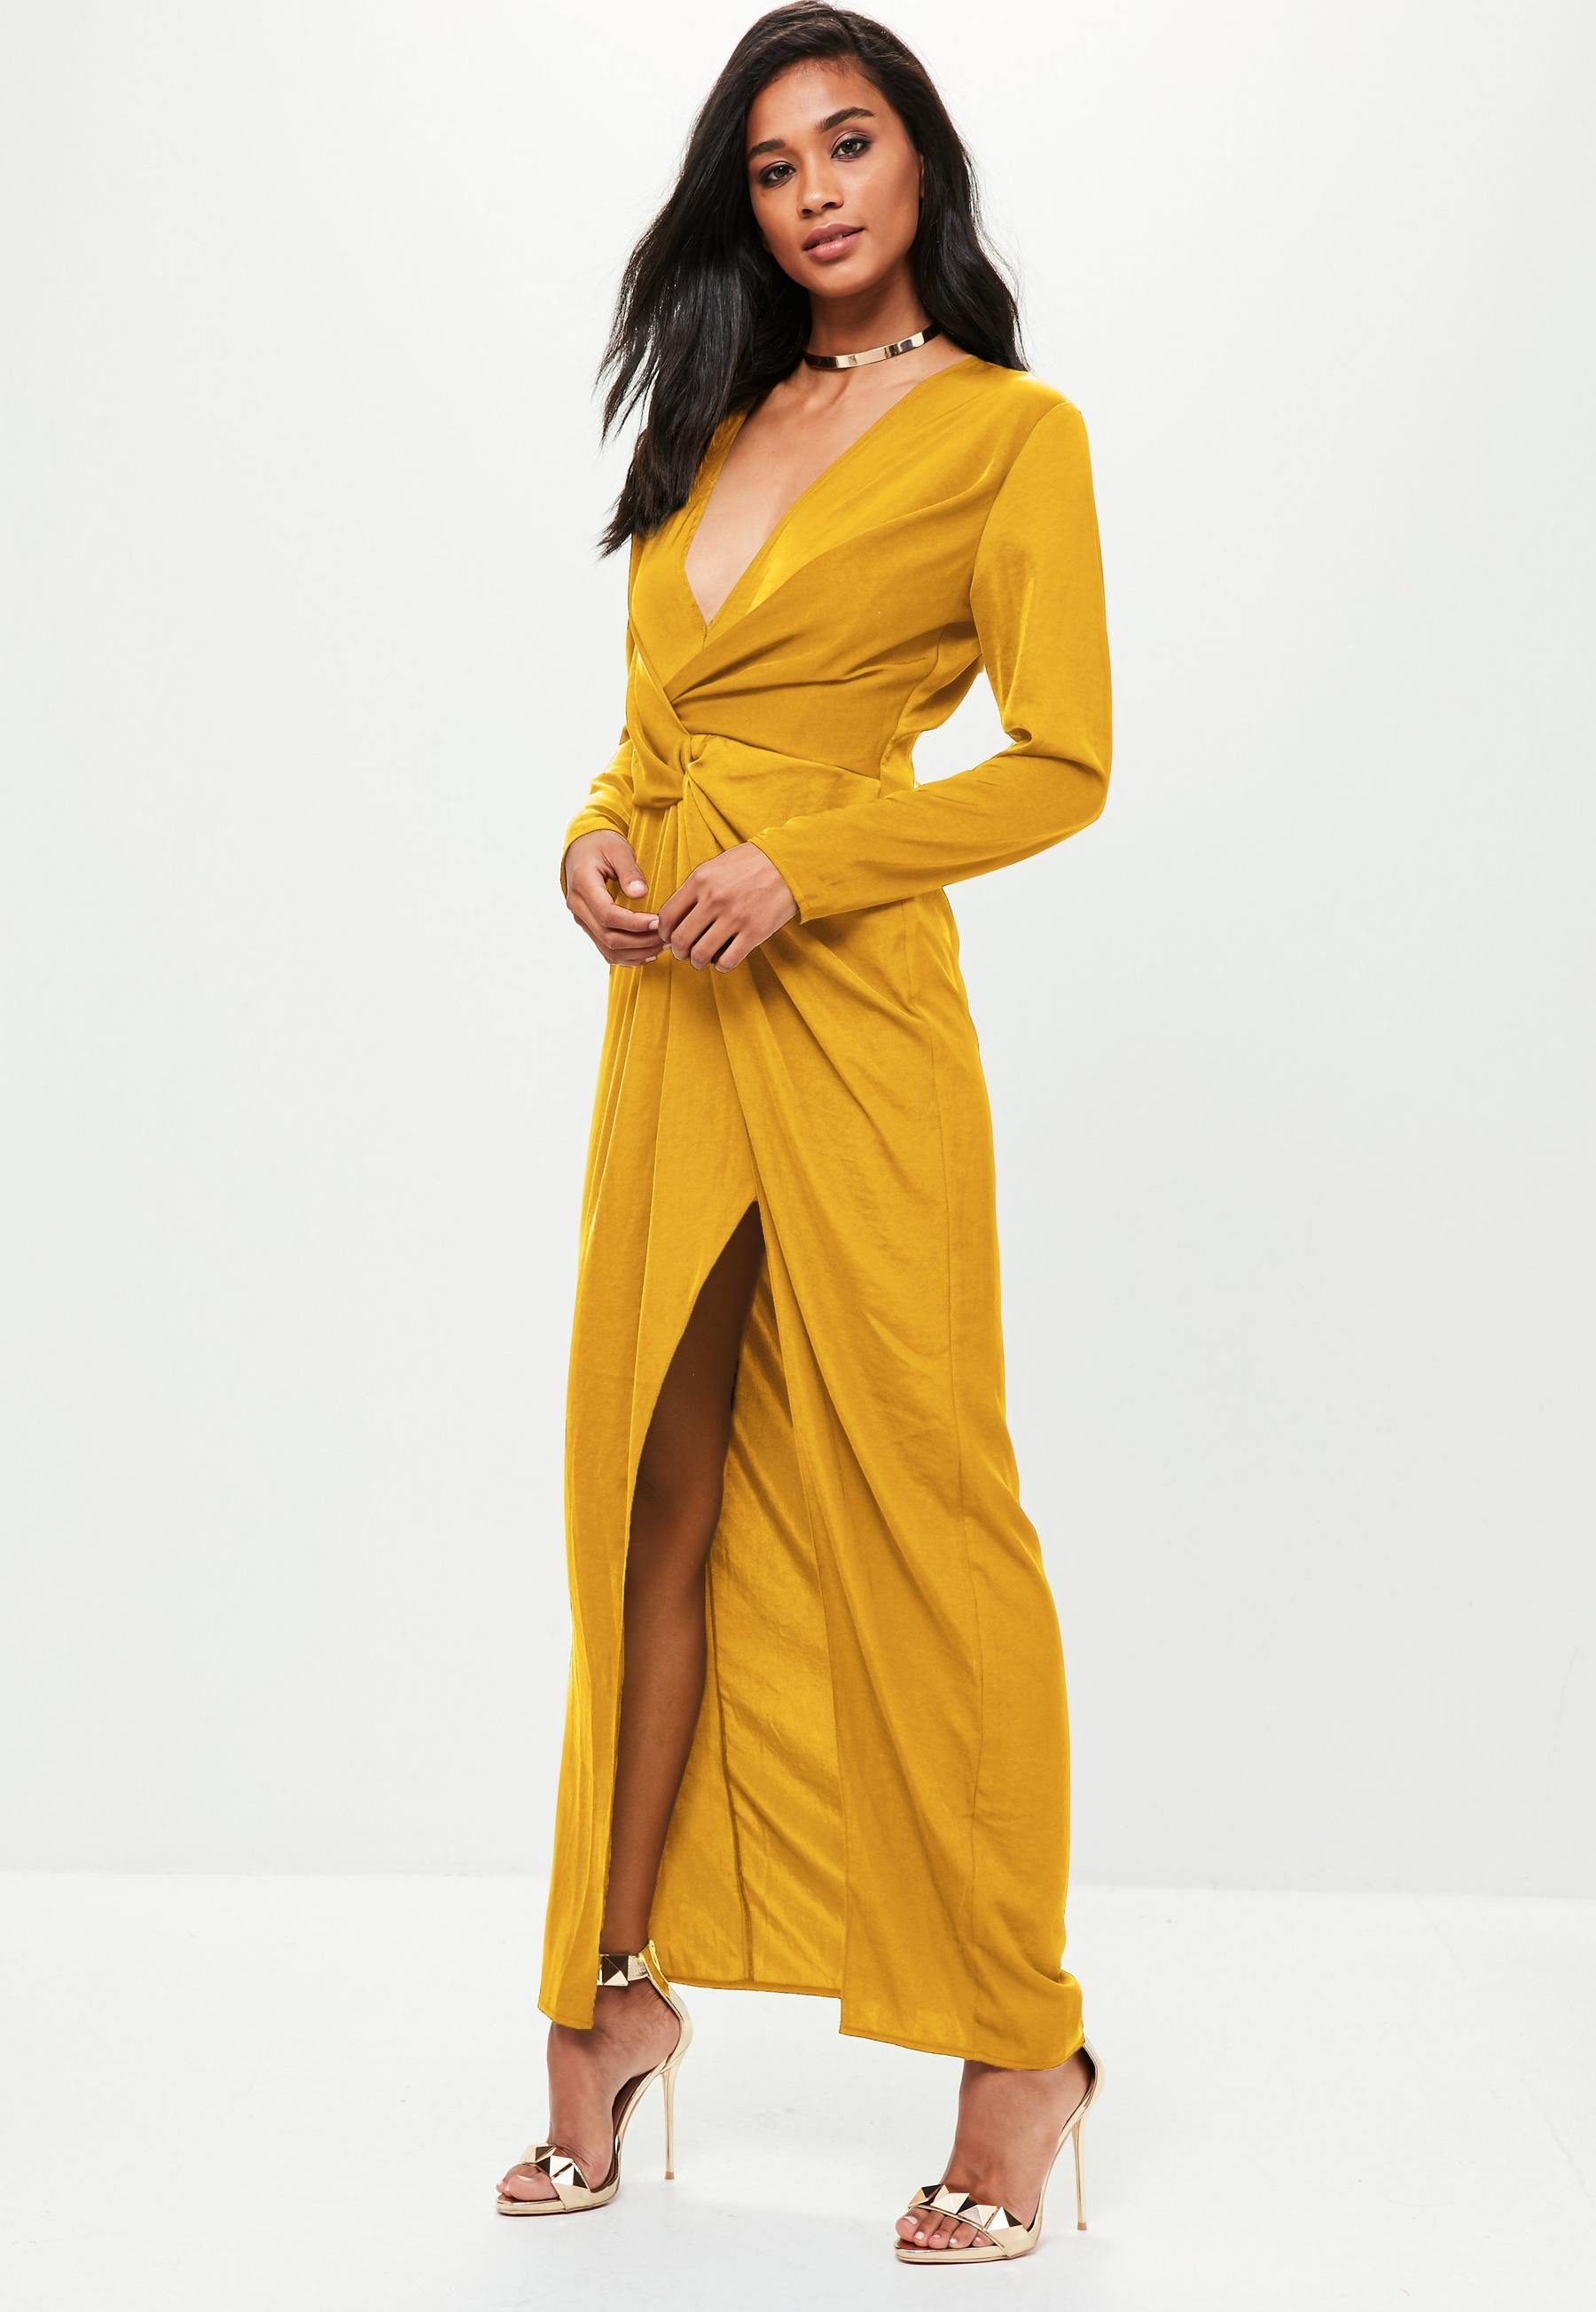 e23ab8b0784 Mustard Yellow satin asymmetric twist front maxi dress